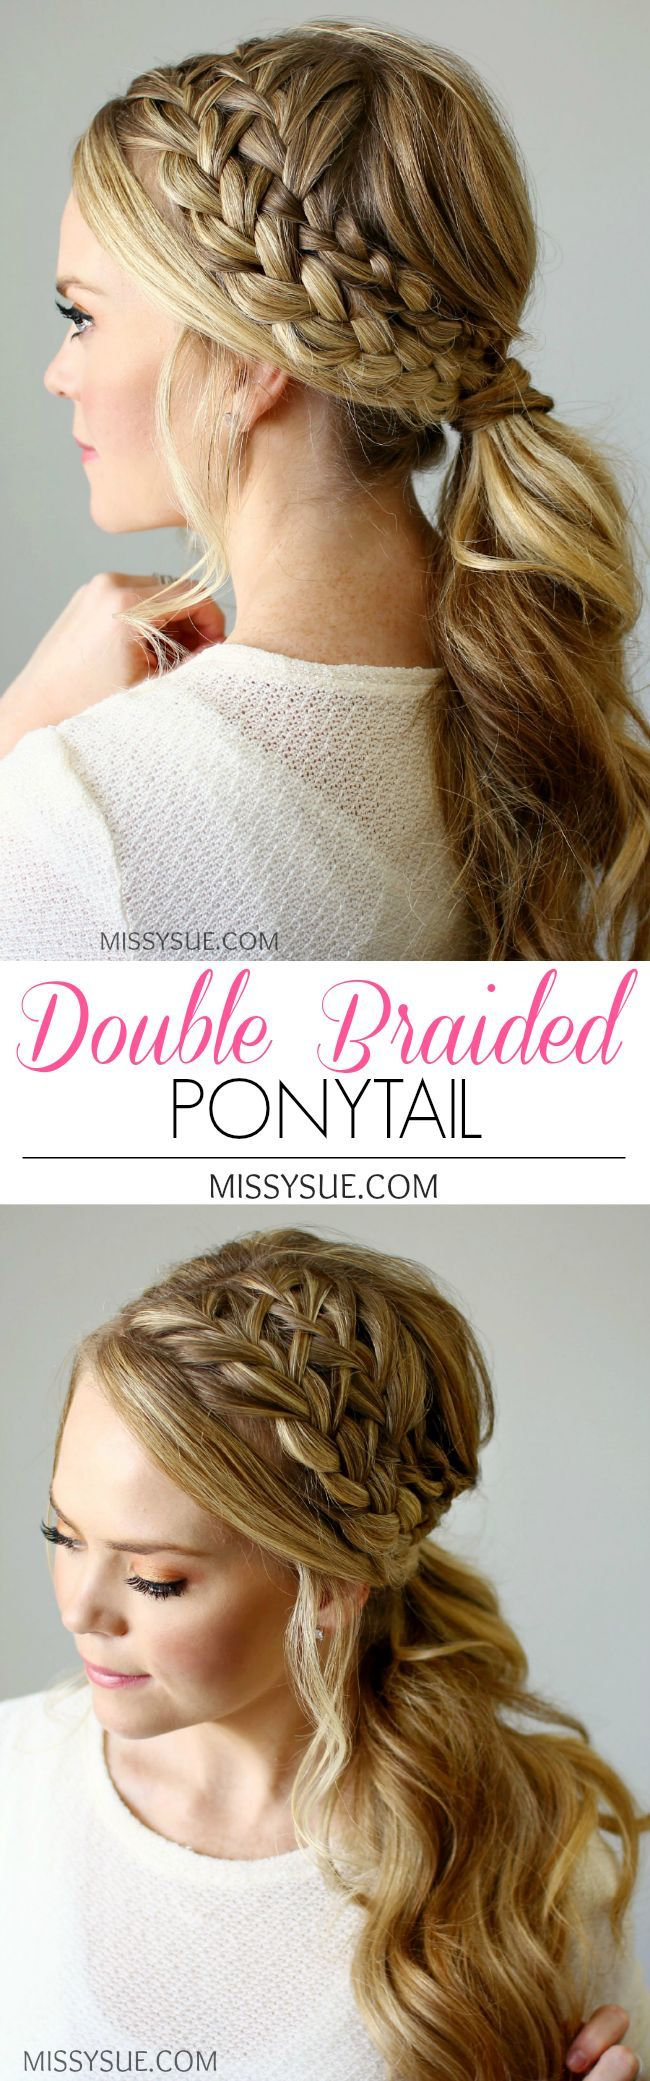 Wondrous 1000 Ideas About Braided Ponytail Hairstyles On Pinterest Hairstyle Inspiration Daily Dogsangcom